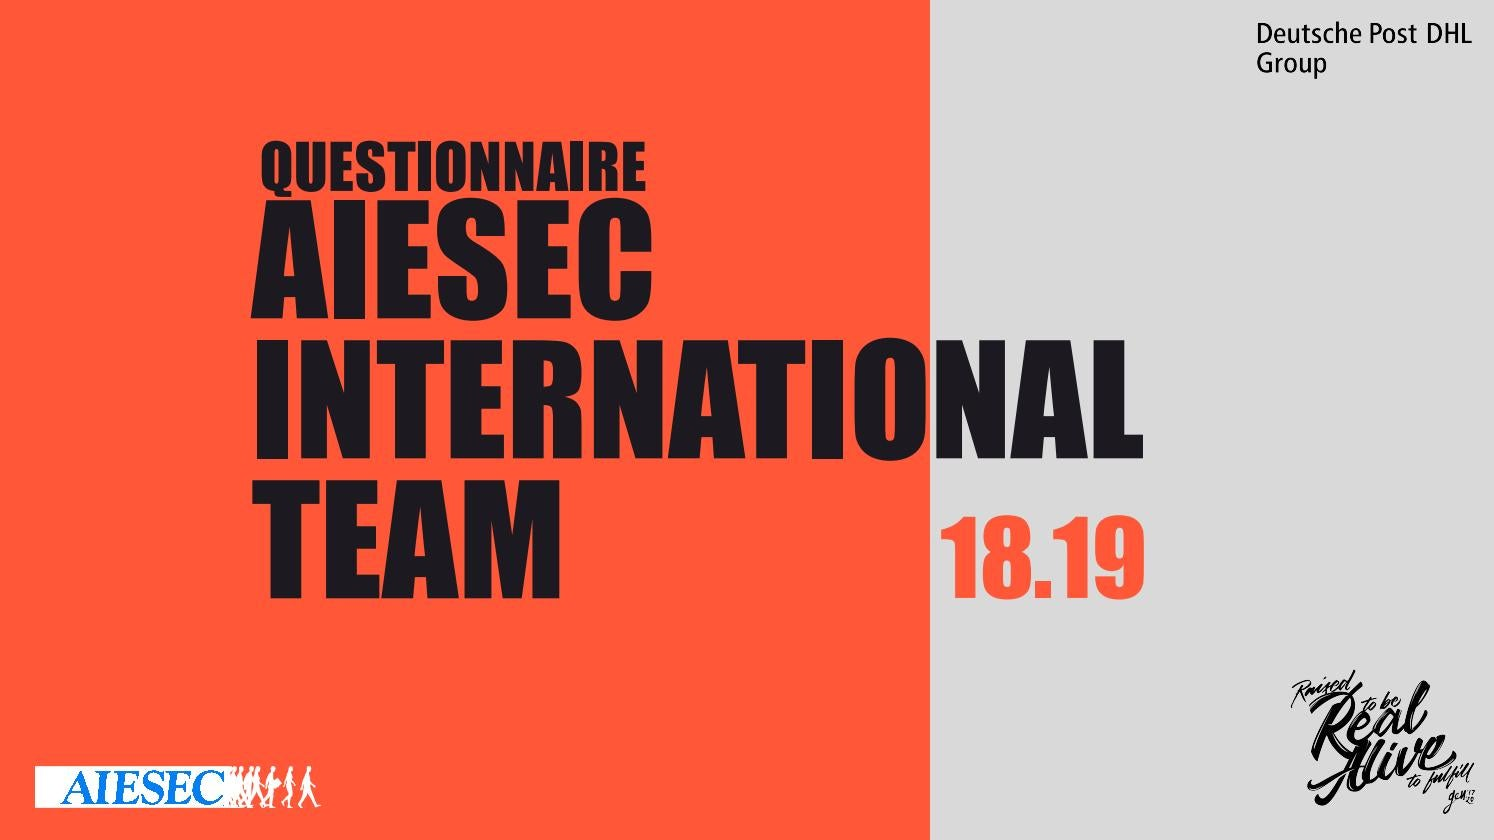 AI Team 18 19 Questionnaire by AIESEC International - issuu